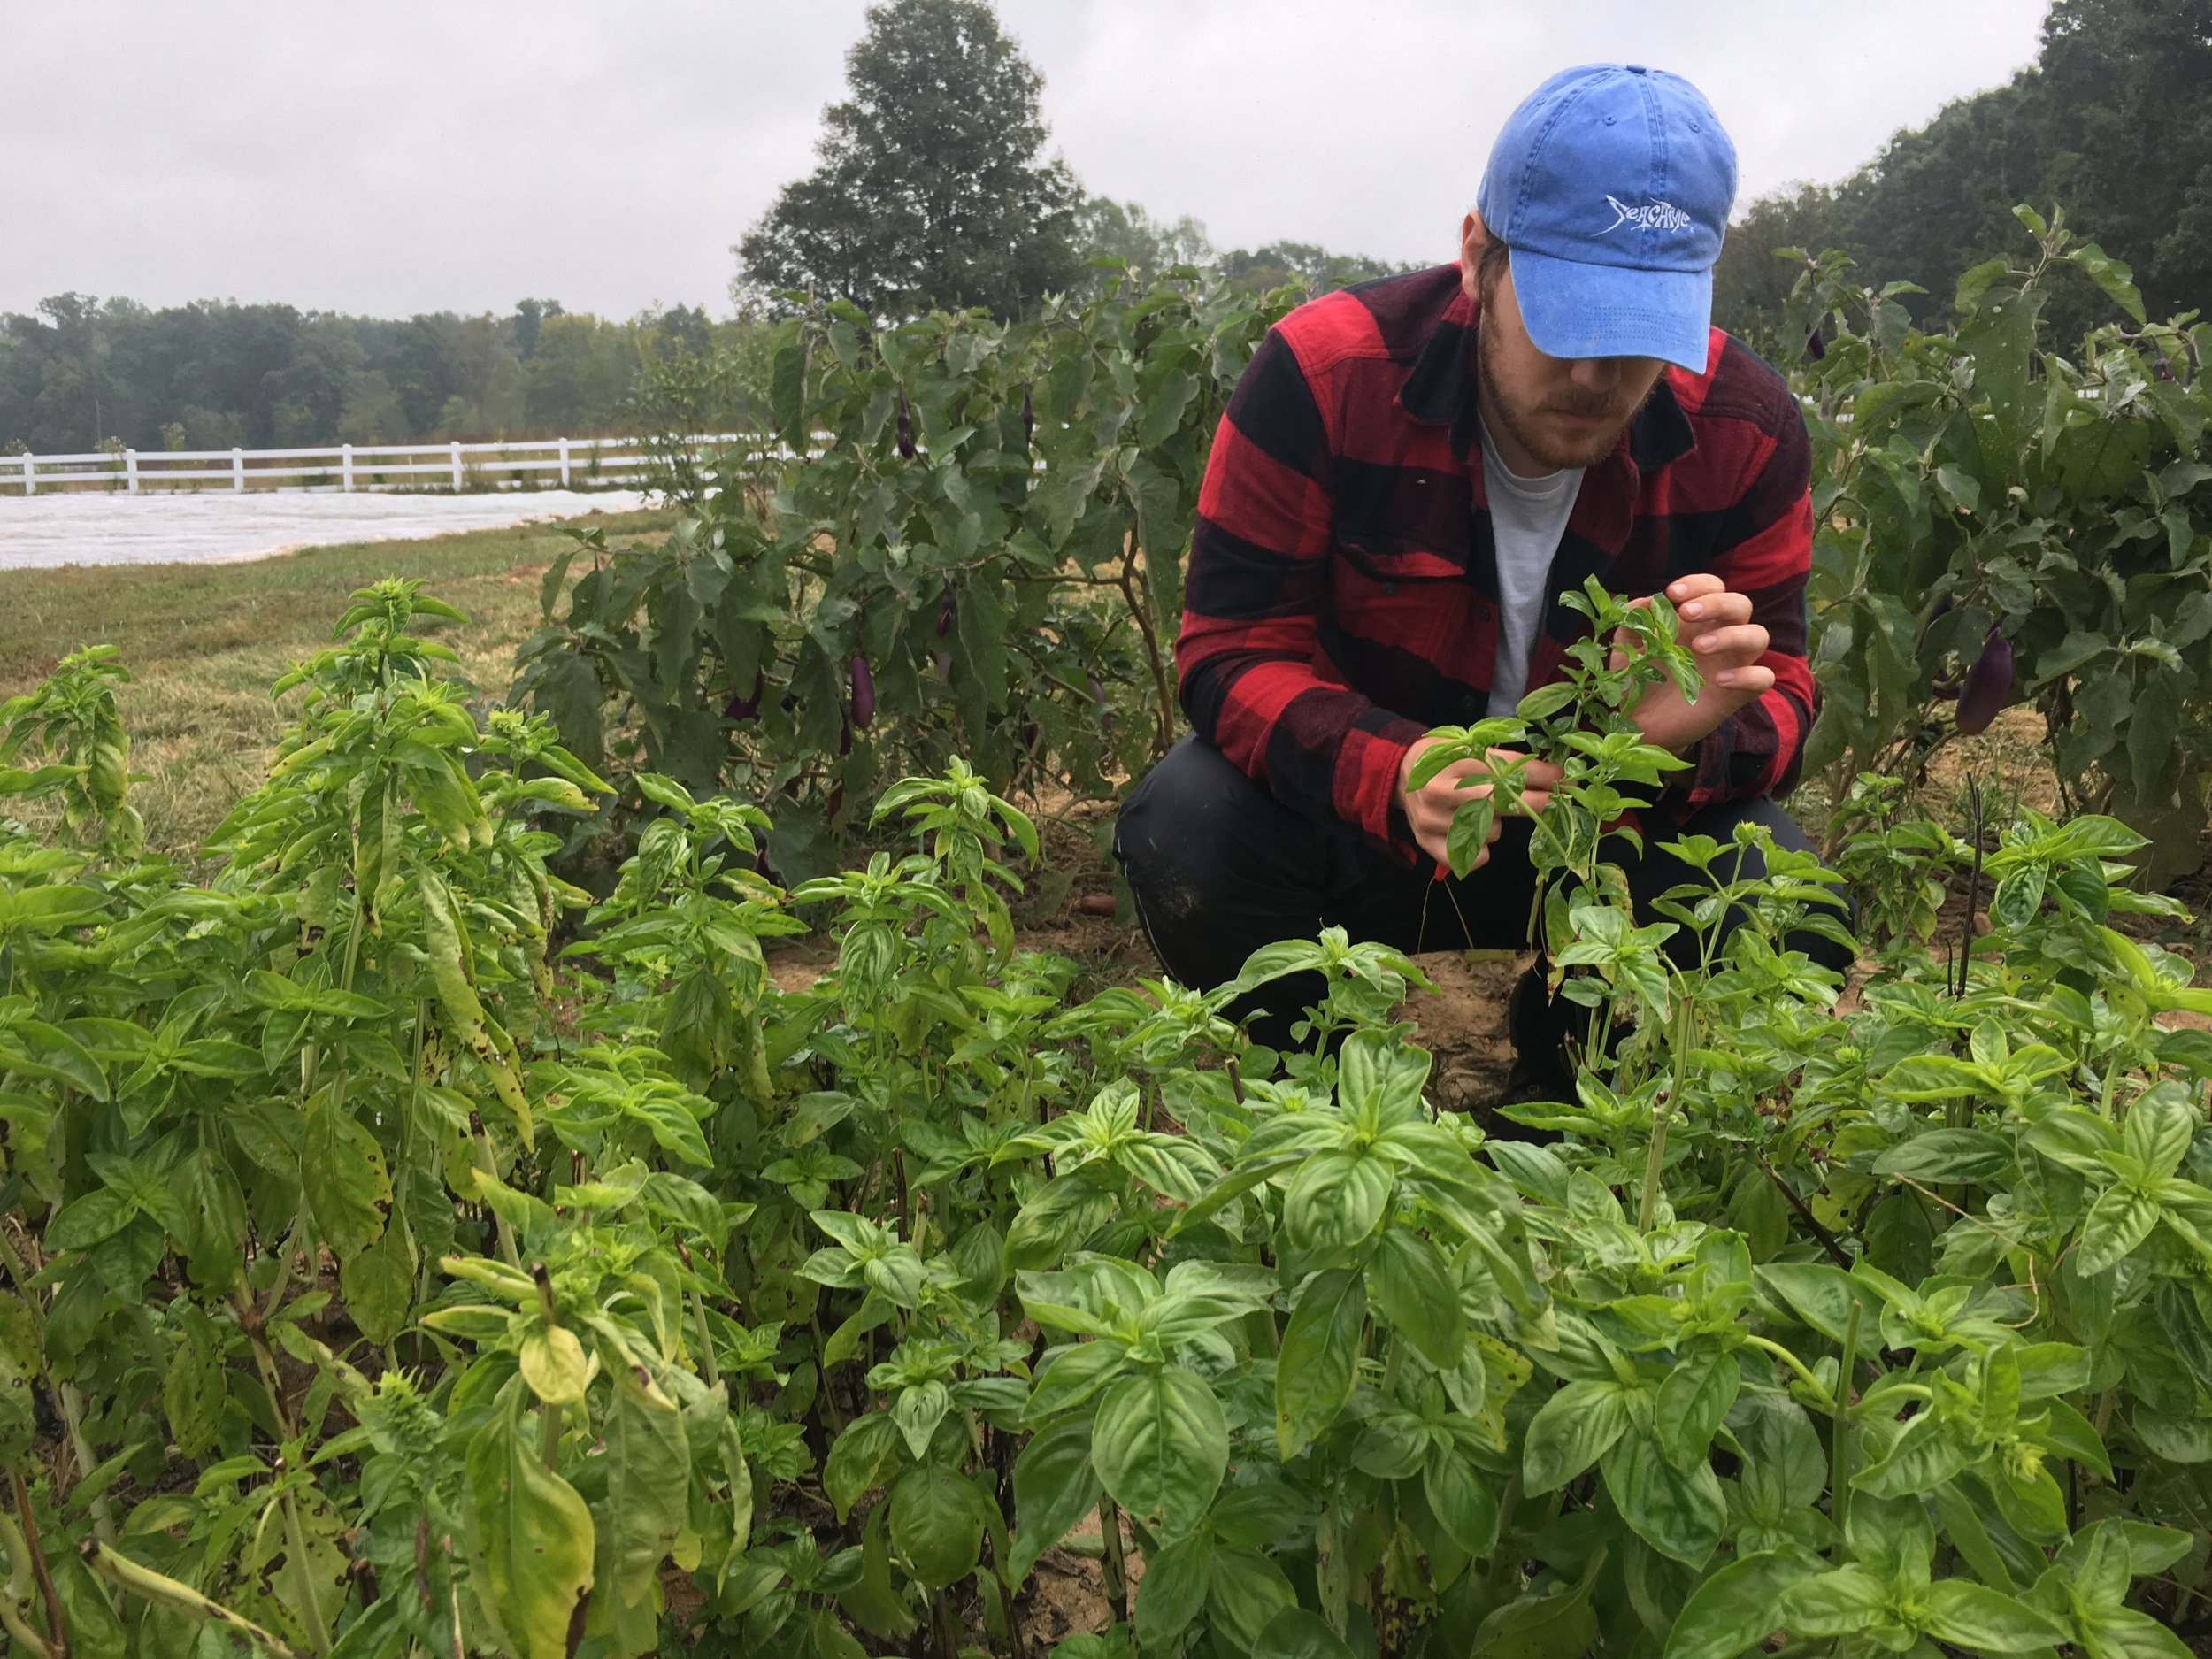 Ty harvesting basil! look he's wearing flannel! It's chilly!